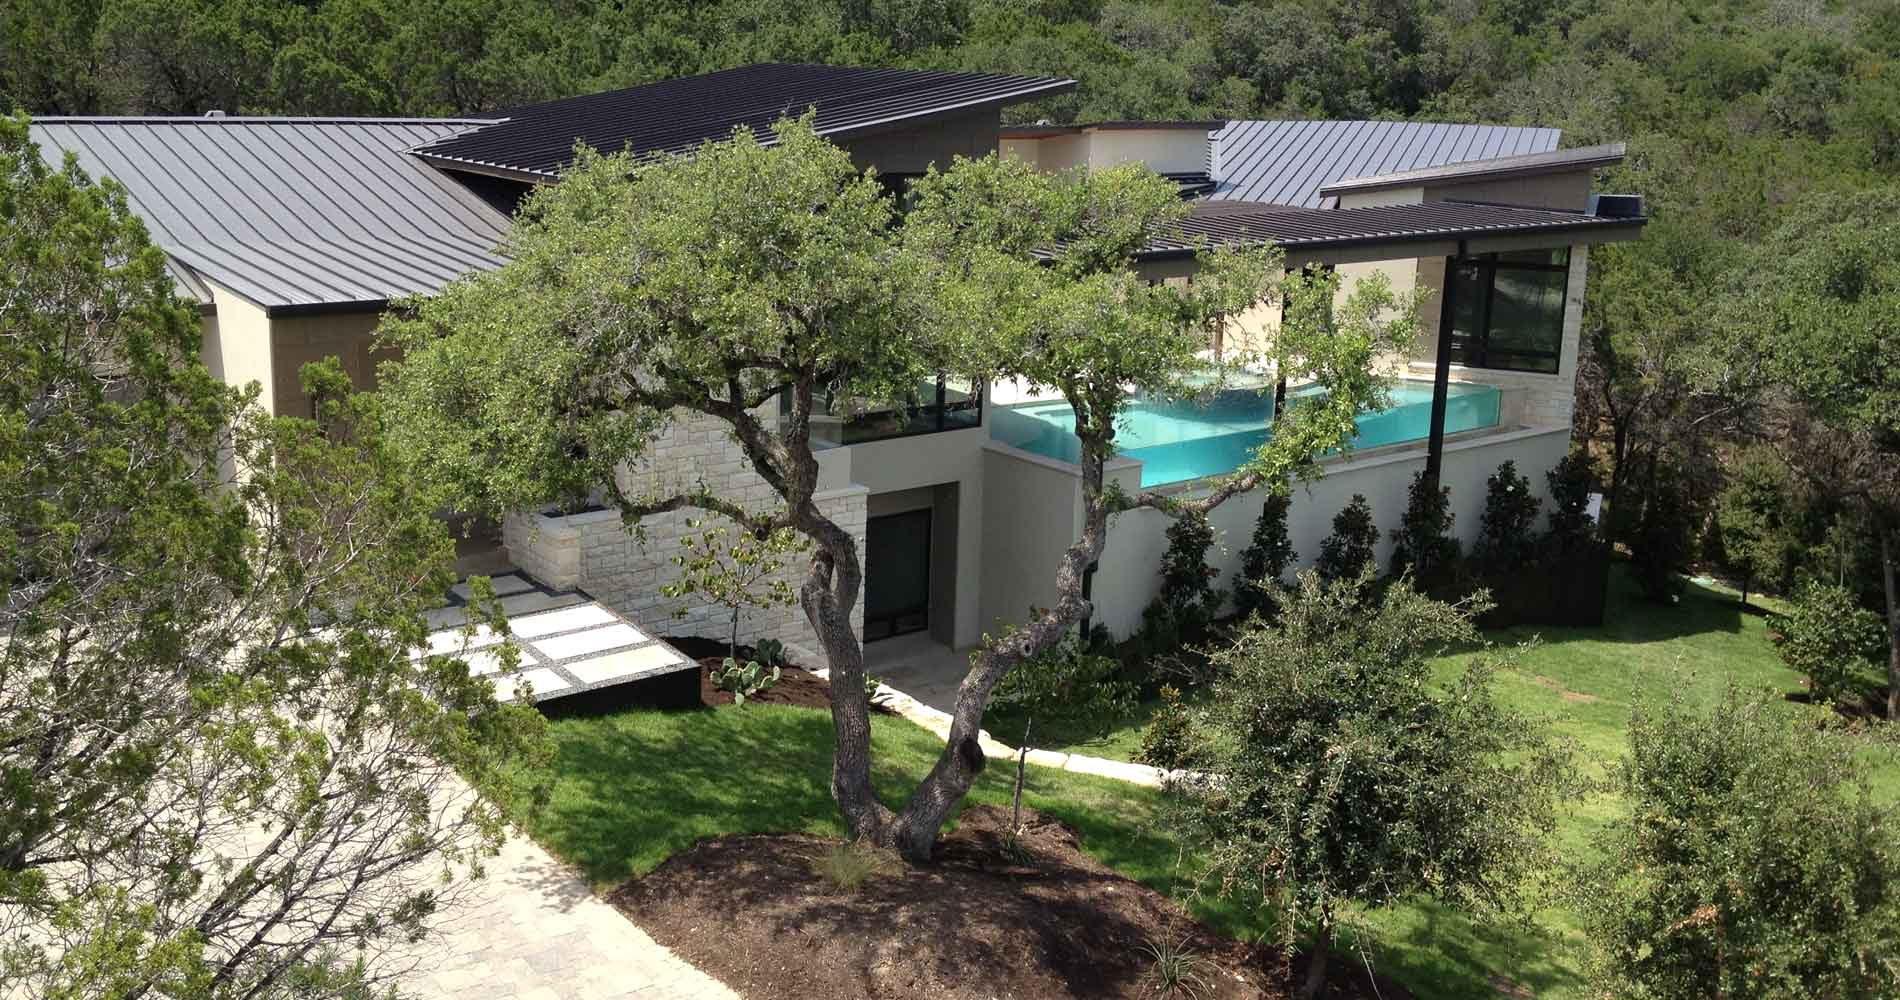 Westlake Contemporary rooflines